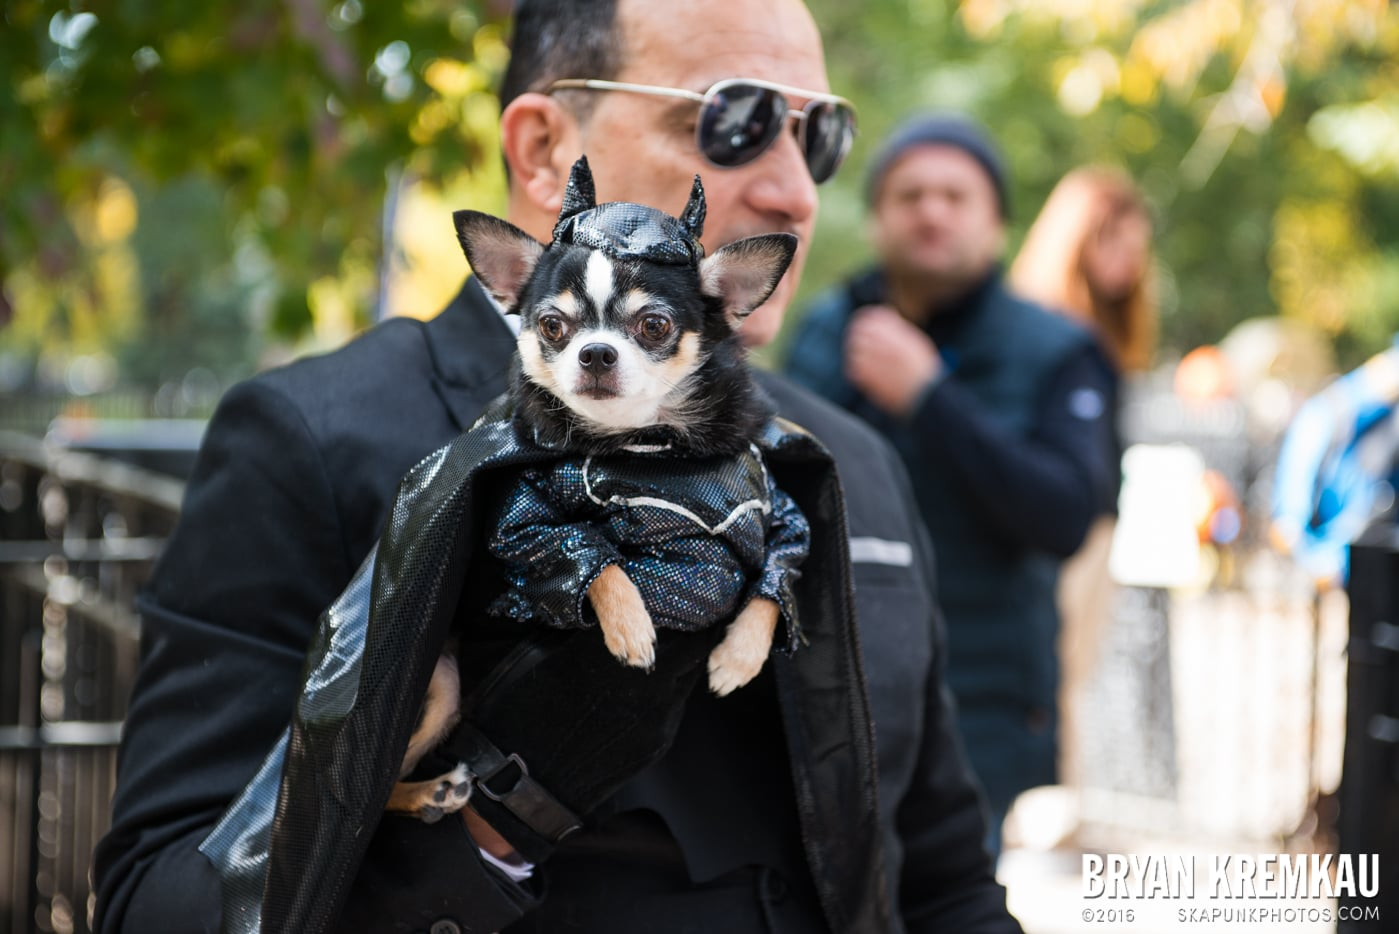 Tompkins Square Halloween Dog Parade 2015 @ Tompkins Square Park, NYC – 10.24.15 (75)